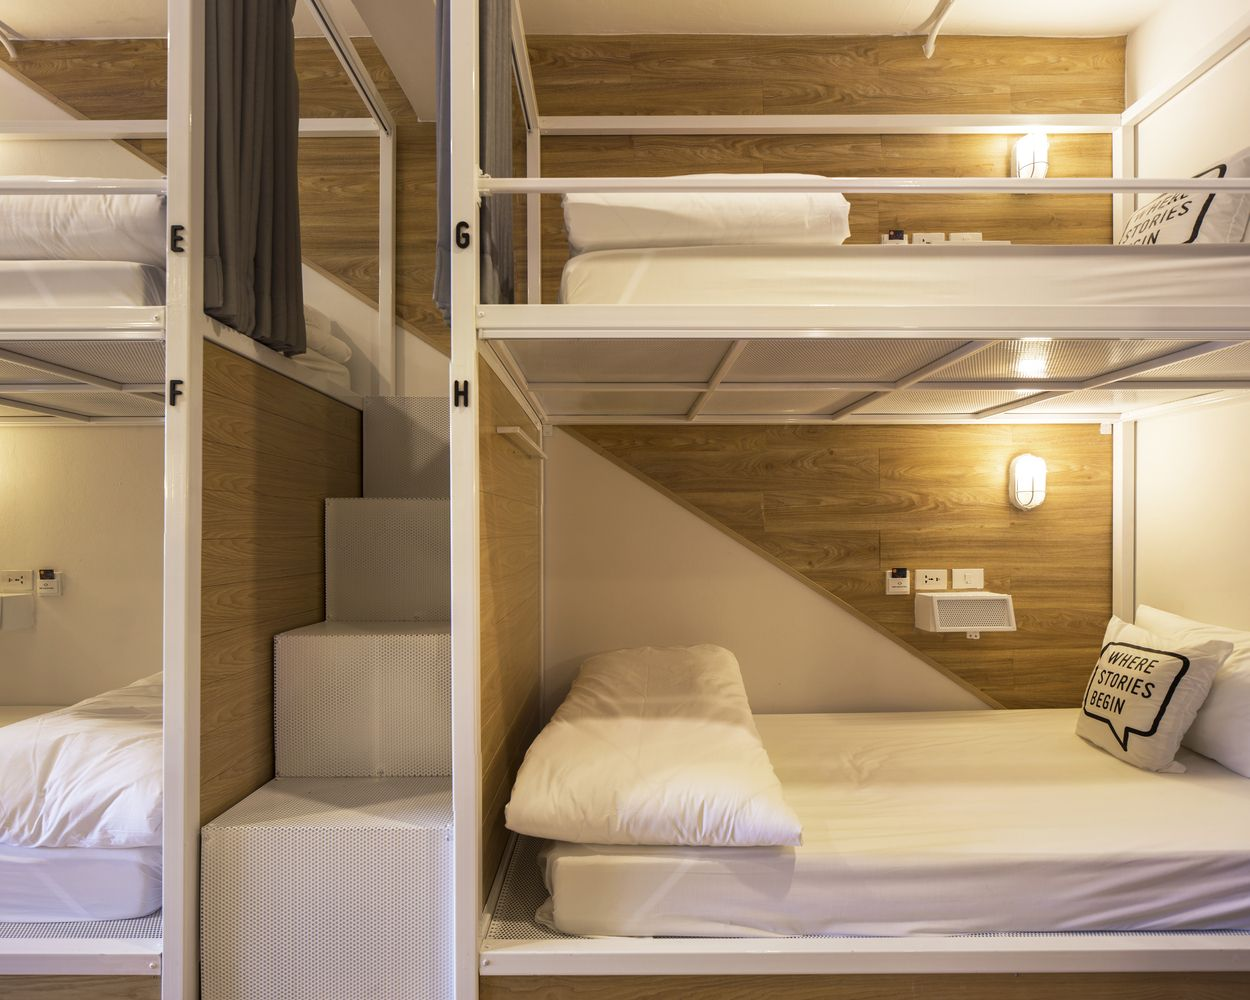 gallery of bed one block hostel / a millimetre - 11 | shared rooms